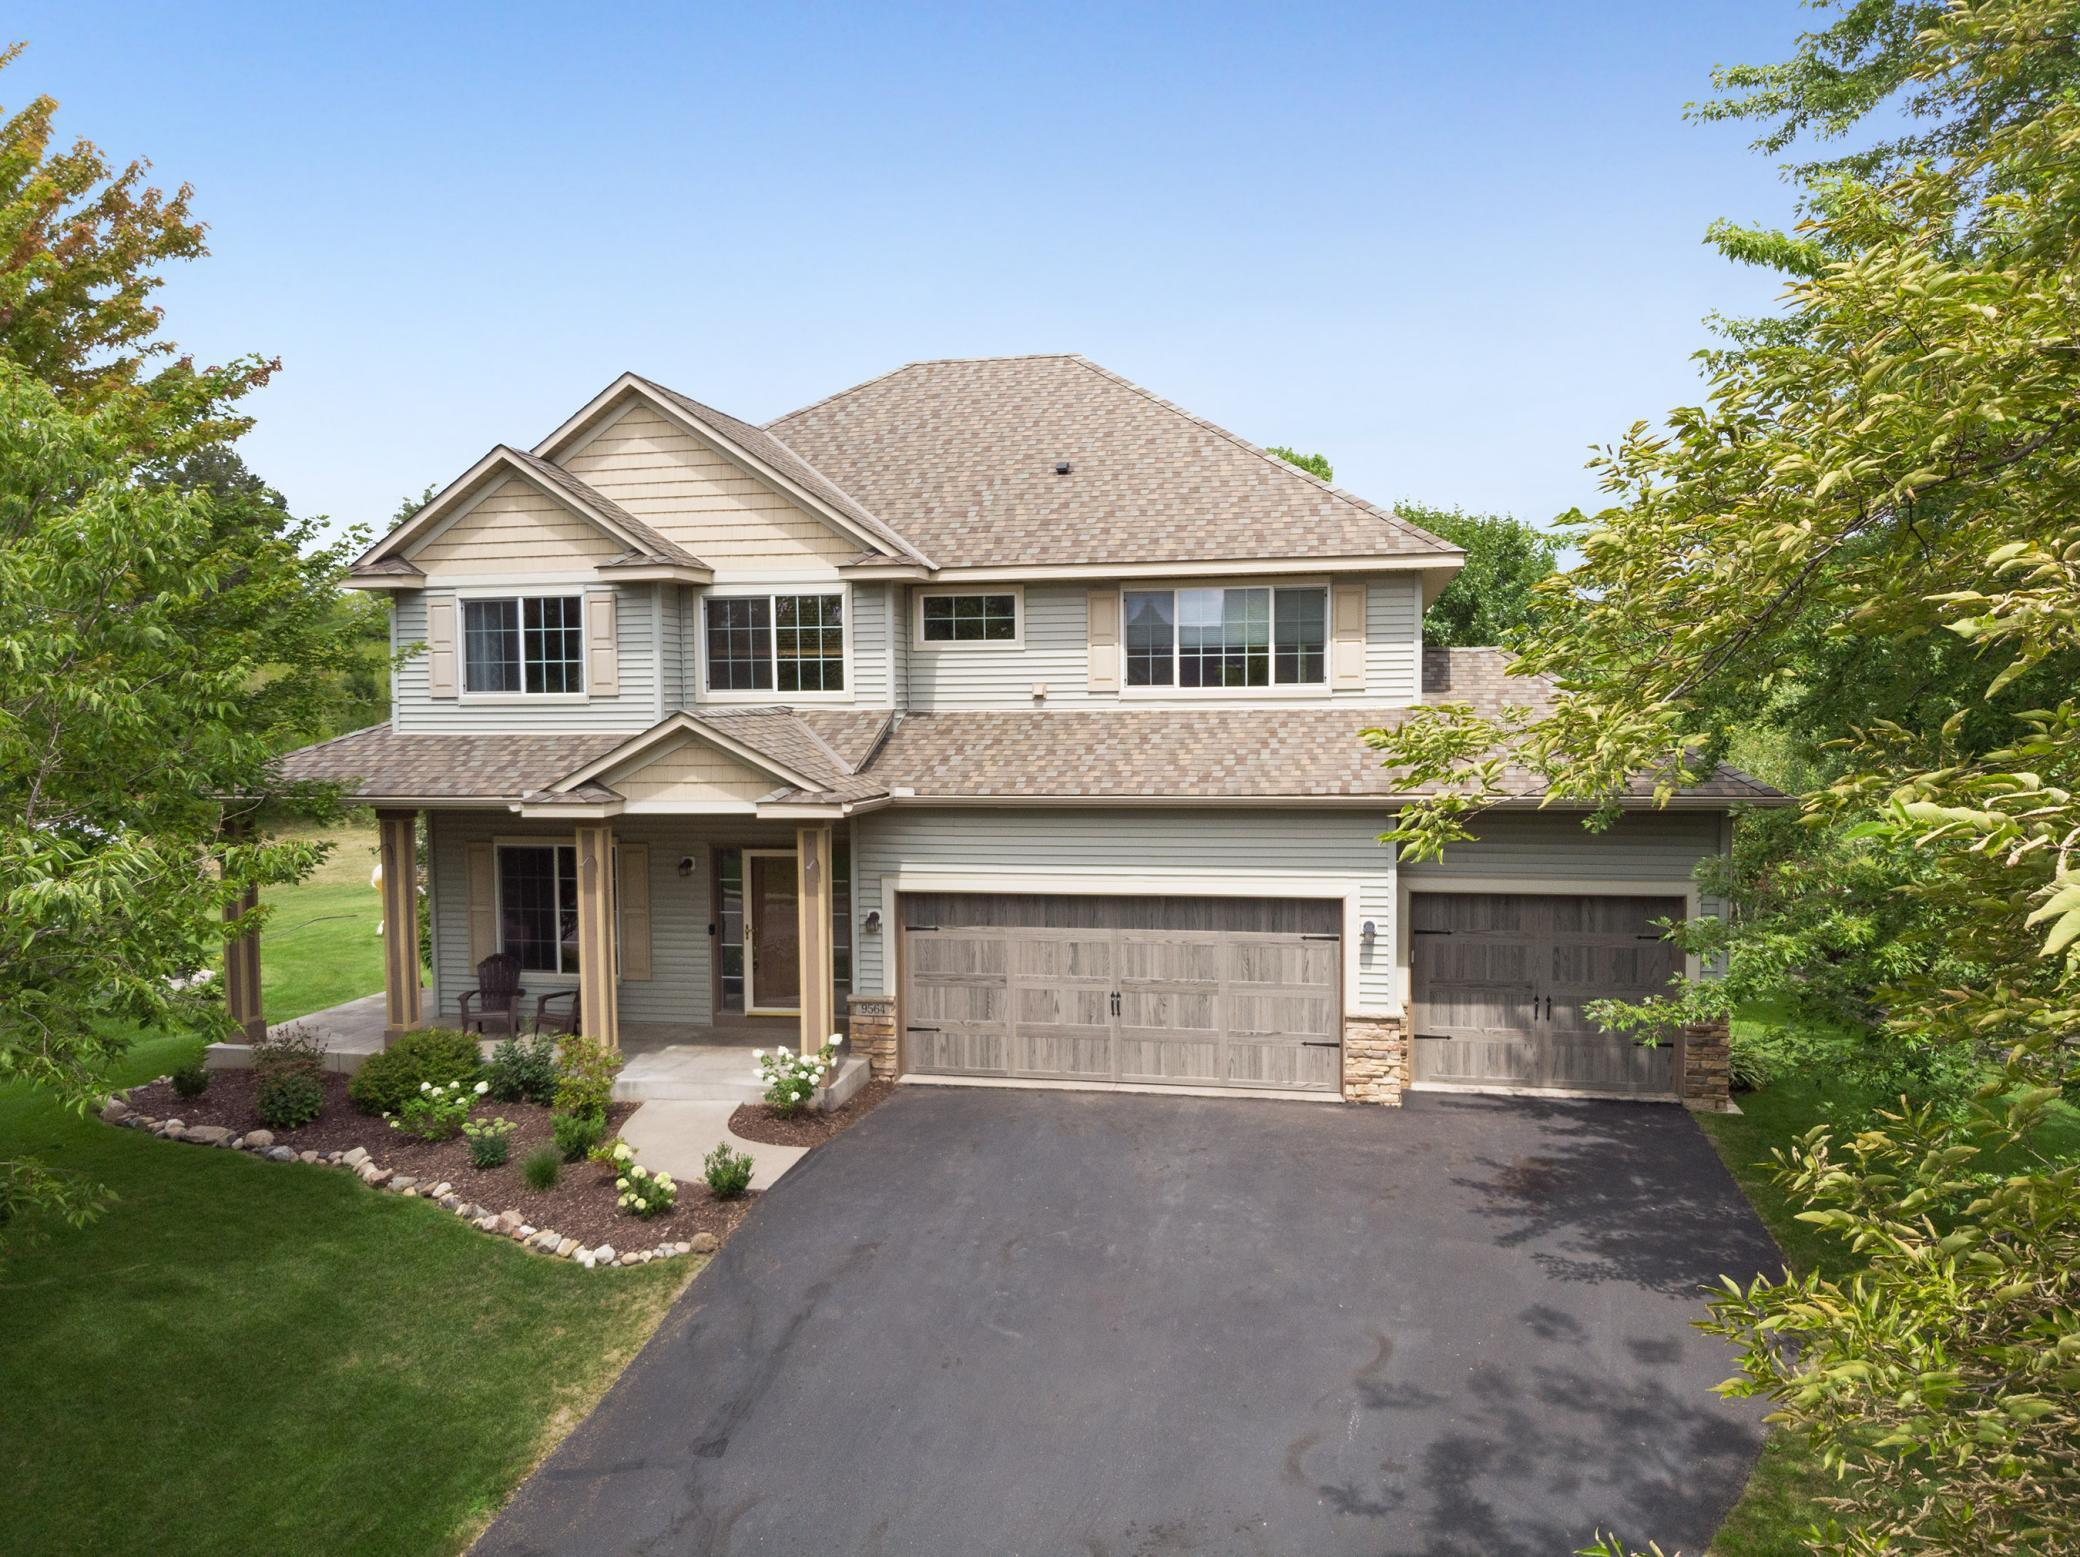 9564 Pheasant Crossing Property Photo - Minnetrista, MN real estate listing